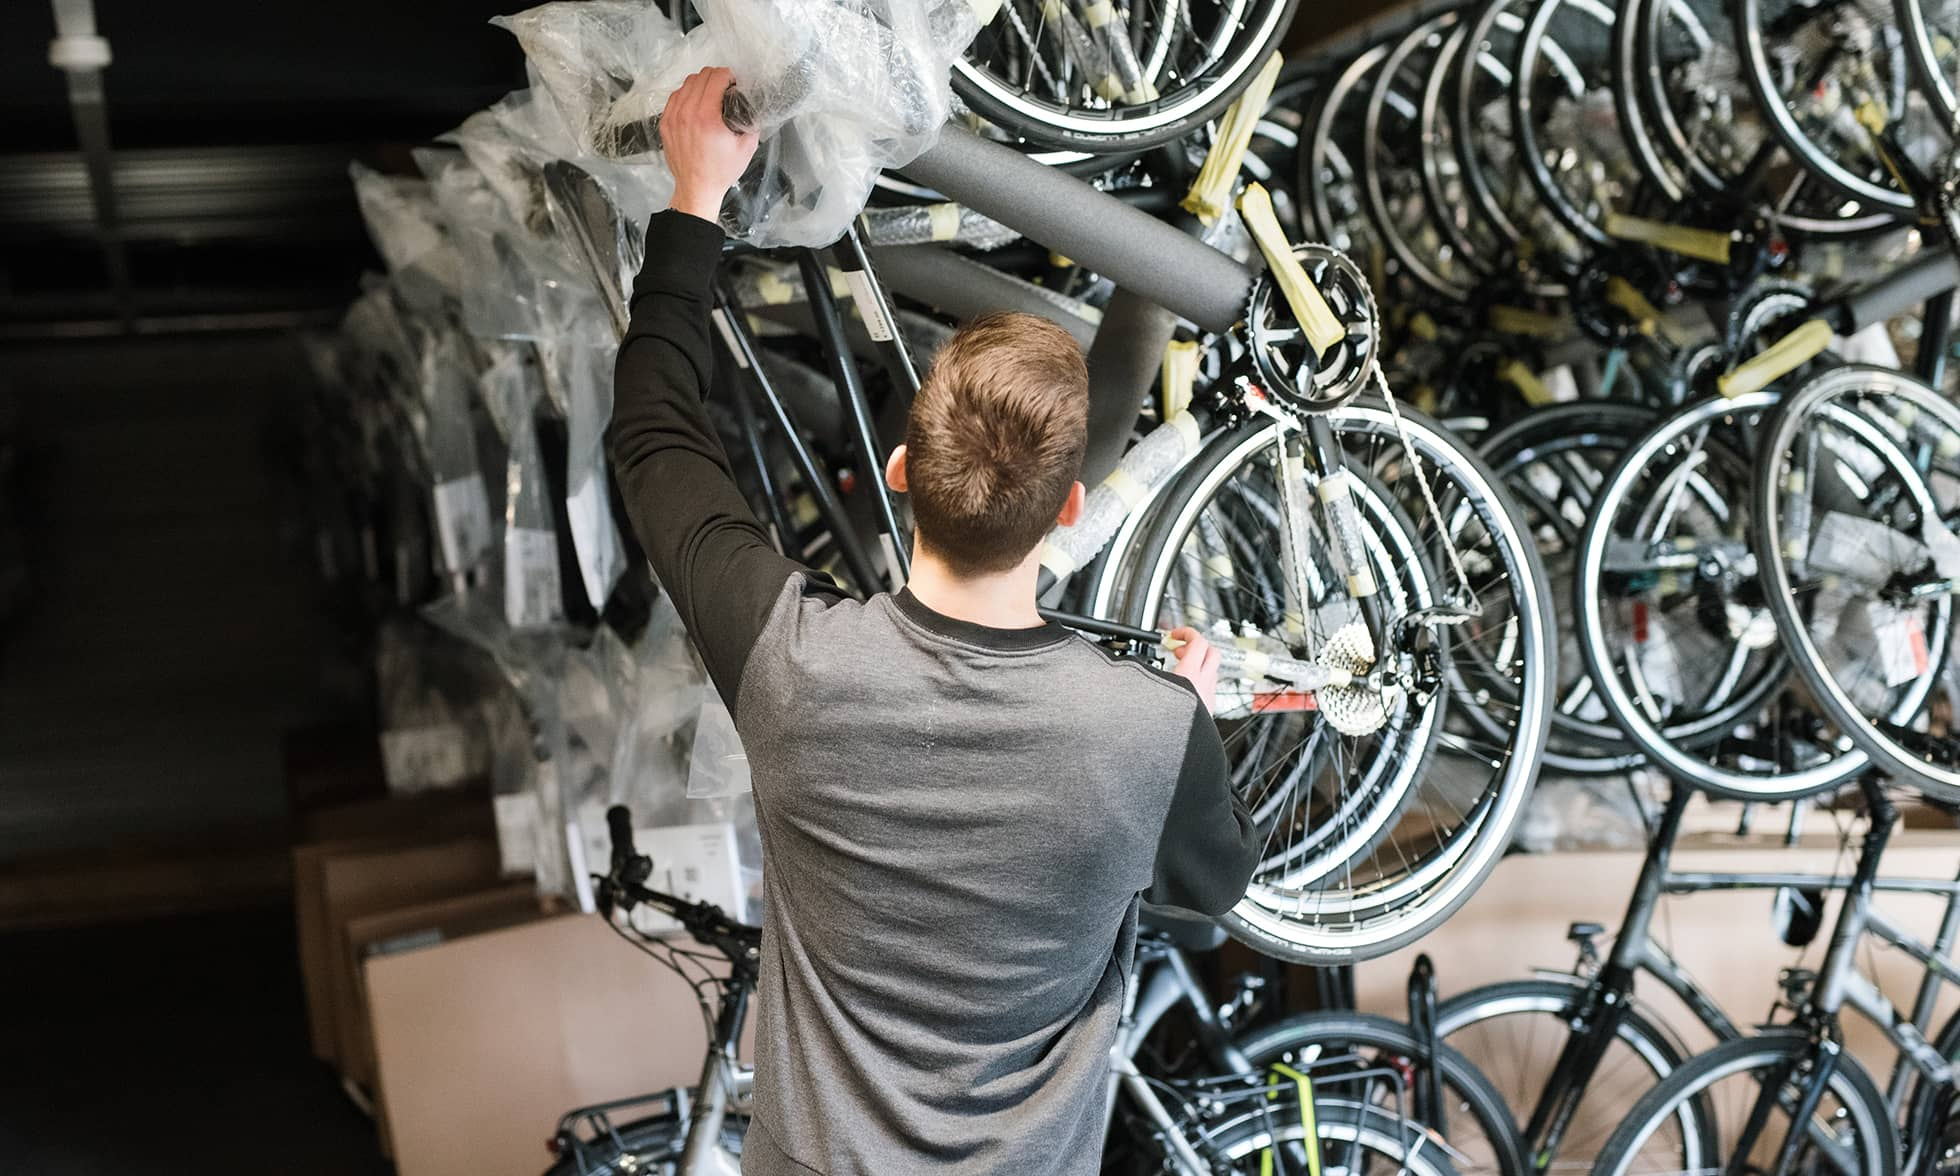 Employee takes new bicycle from vertical rack